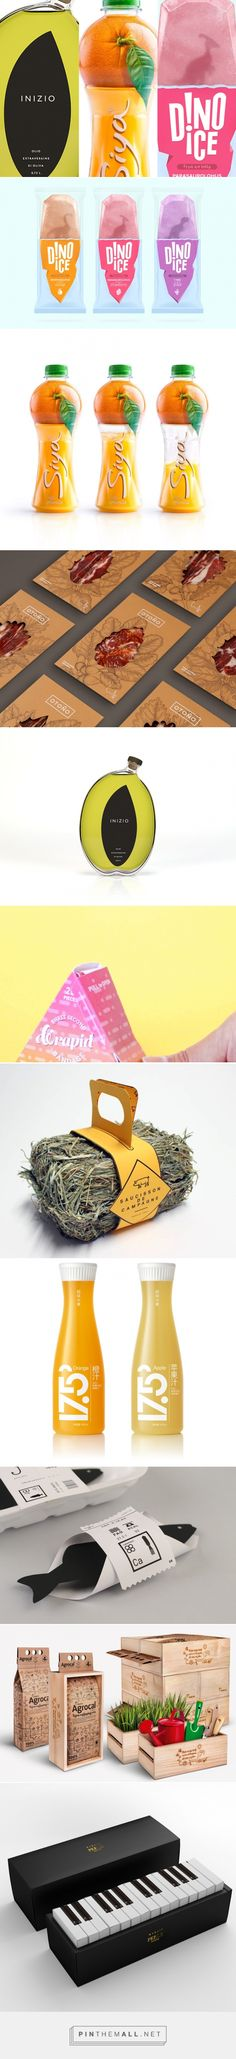 Top 10 Packaging Design You Shouldn't Miss In April 2016 - http://www.packagingoftheworld.com/2016/05/packaging-you-shouldnt-miss-in-april.html